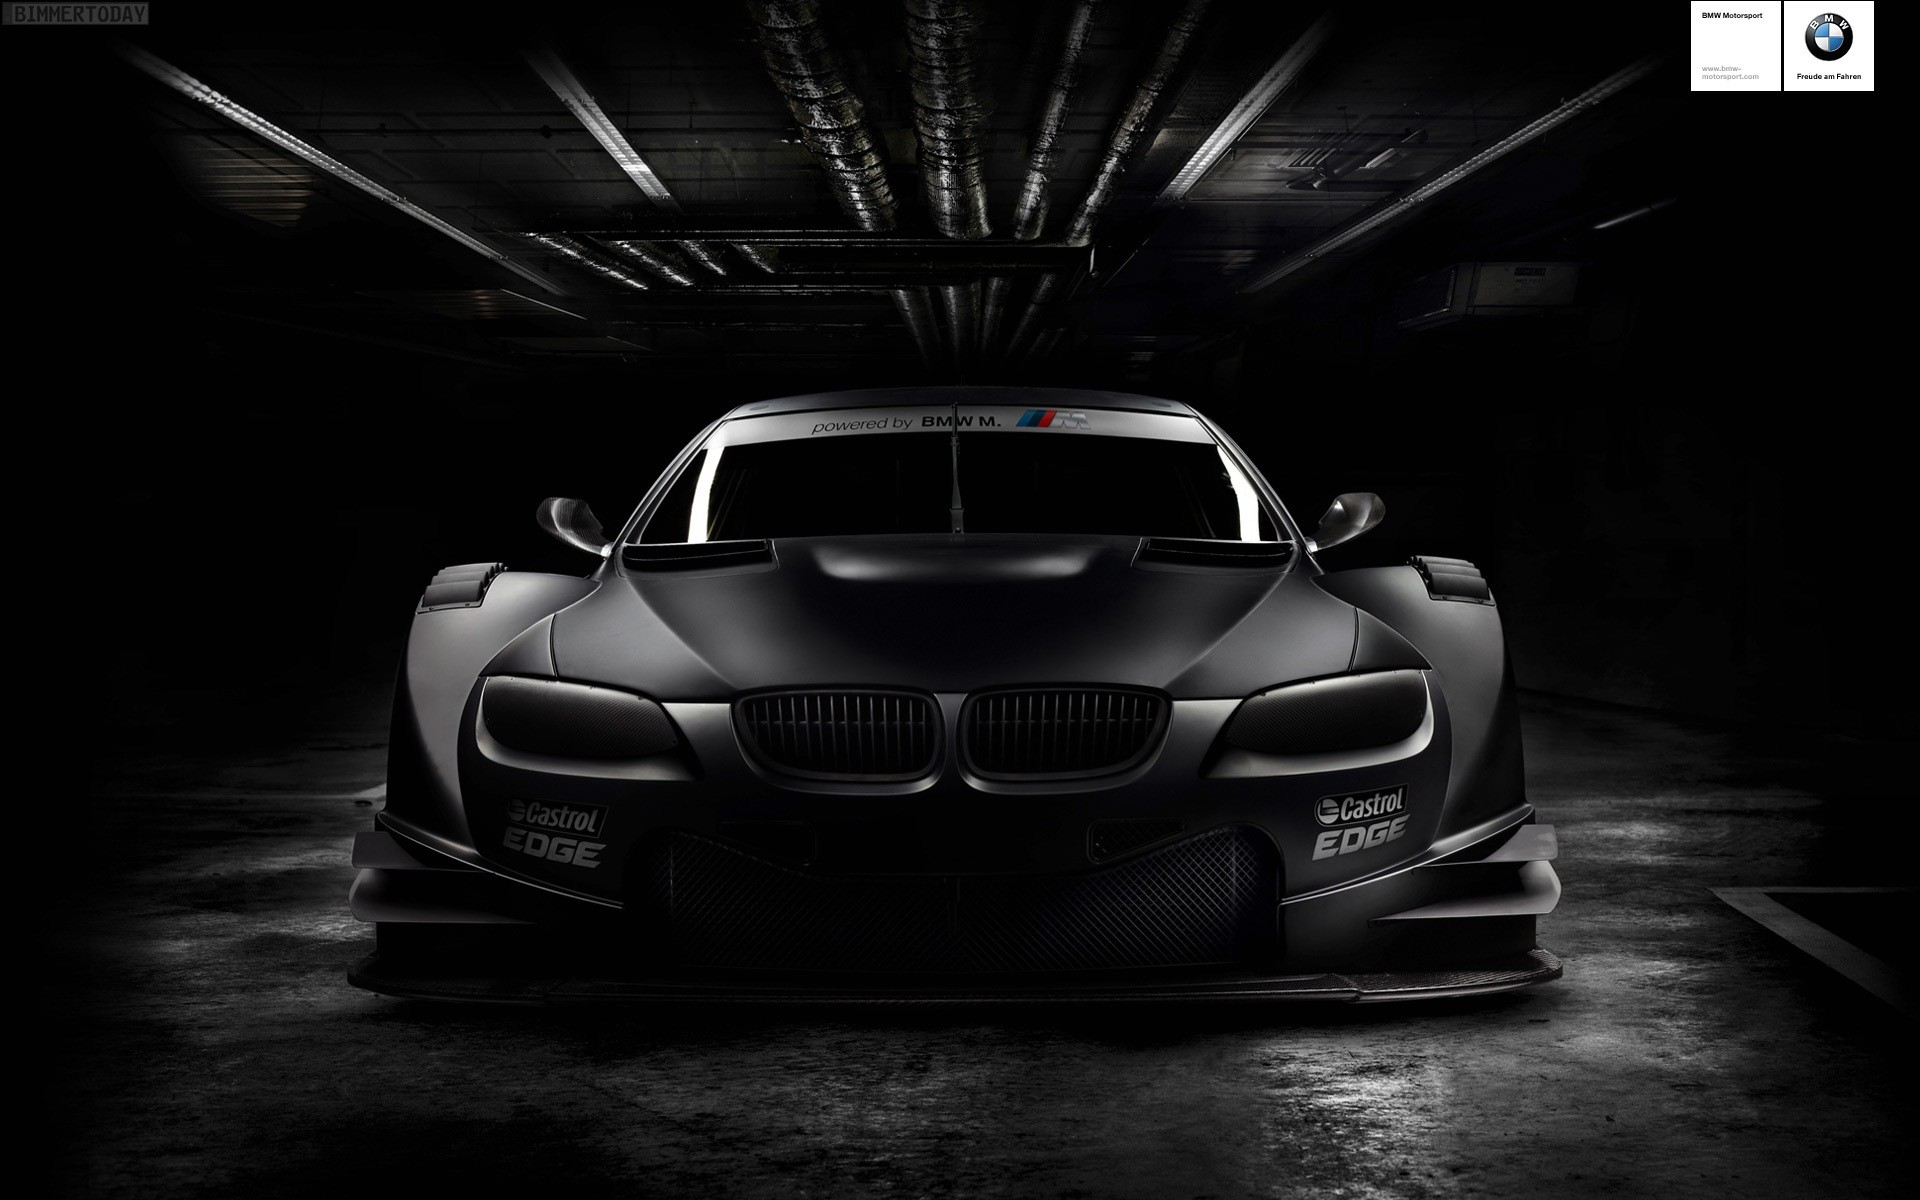 1920x1200 Widescreen Wallpapers of BMW Phone, Cute Photo